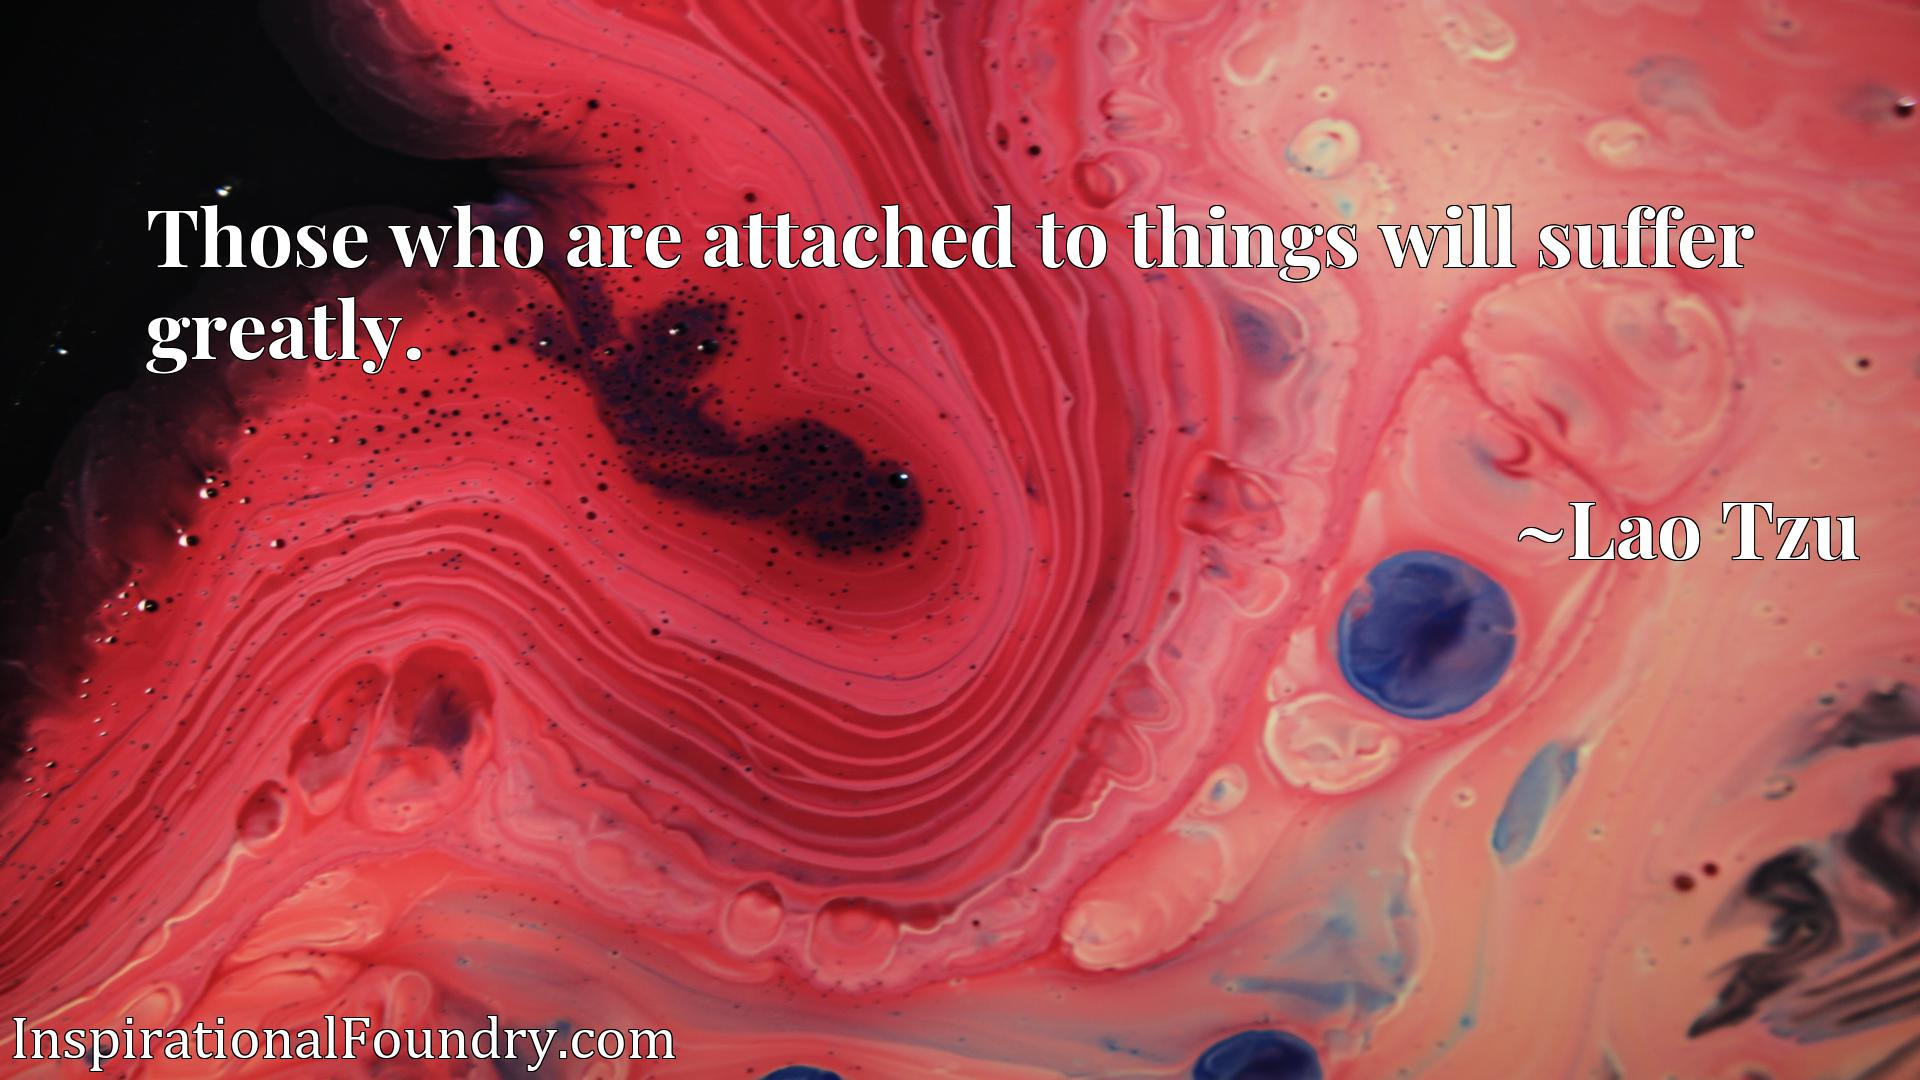 Those who are attached to things will suffer greatly.